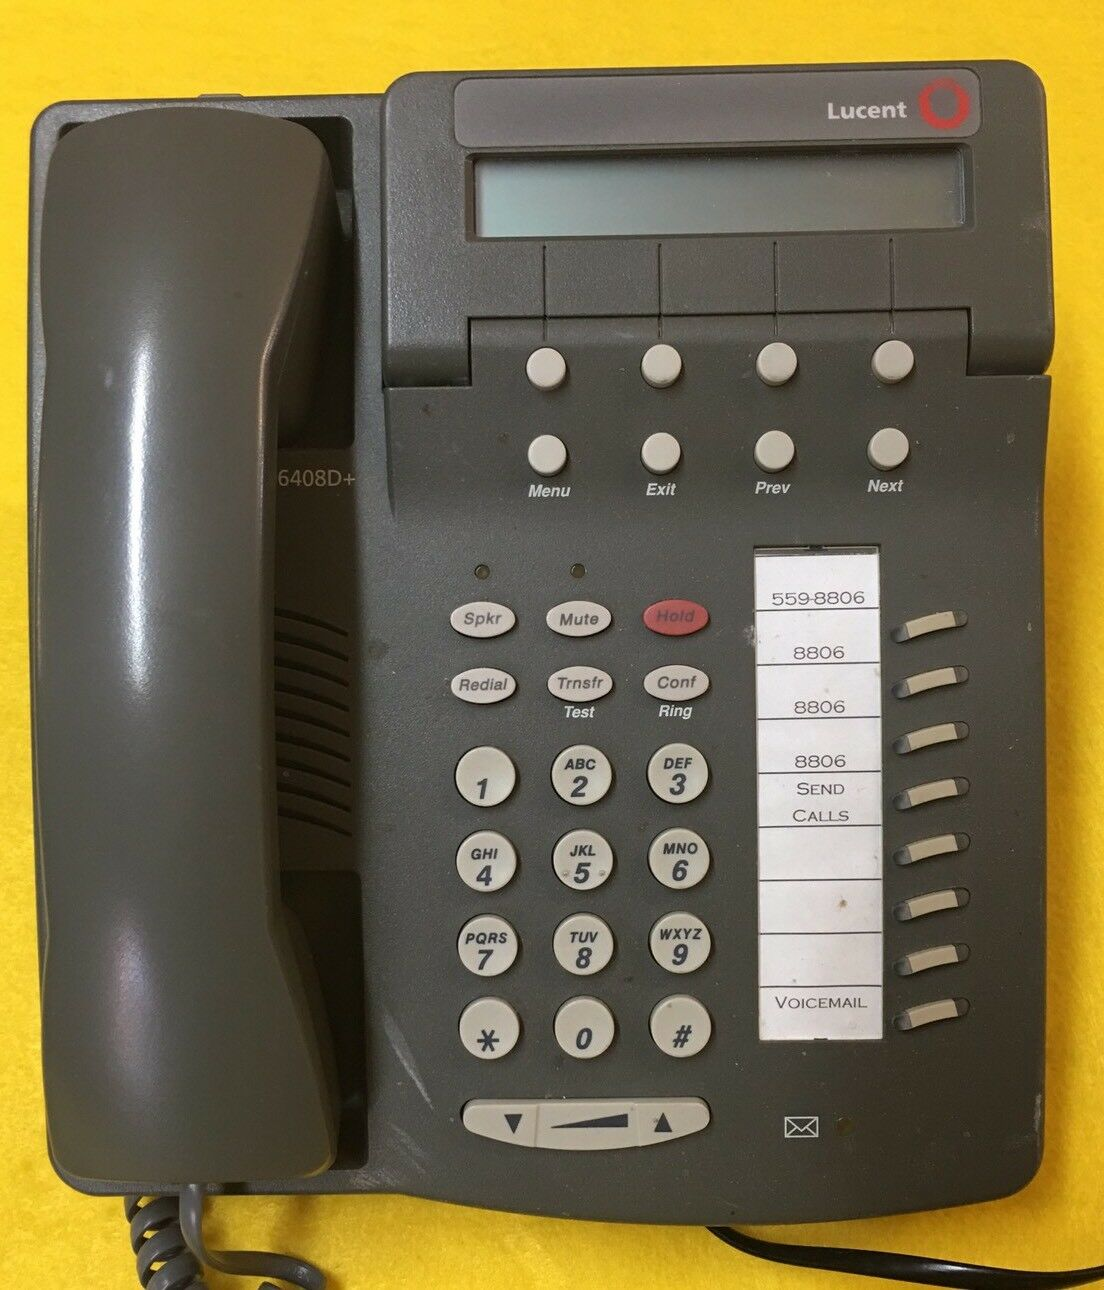 Lucent Avaya 6408 6408D+ Digital Business Telephone Phone Handset 1 of  4Only 3 available ...